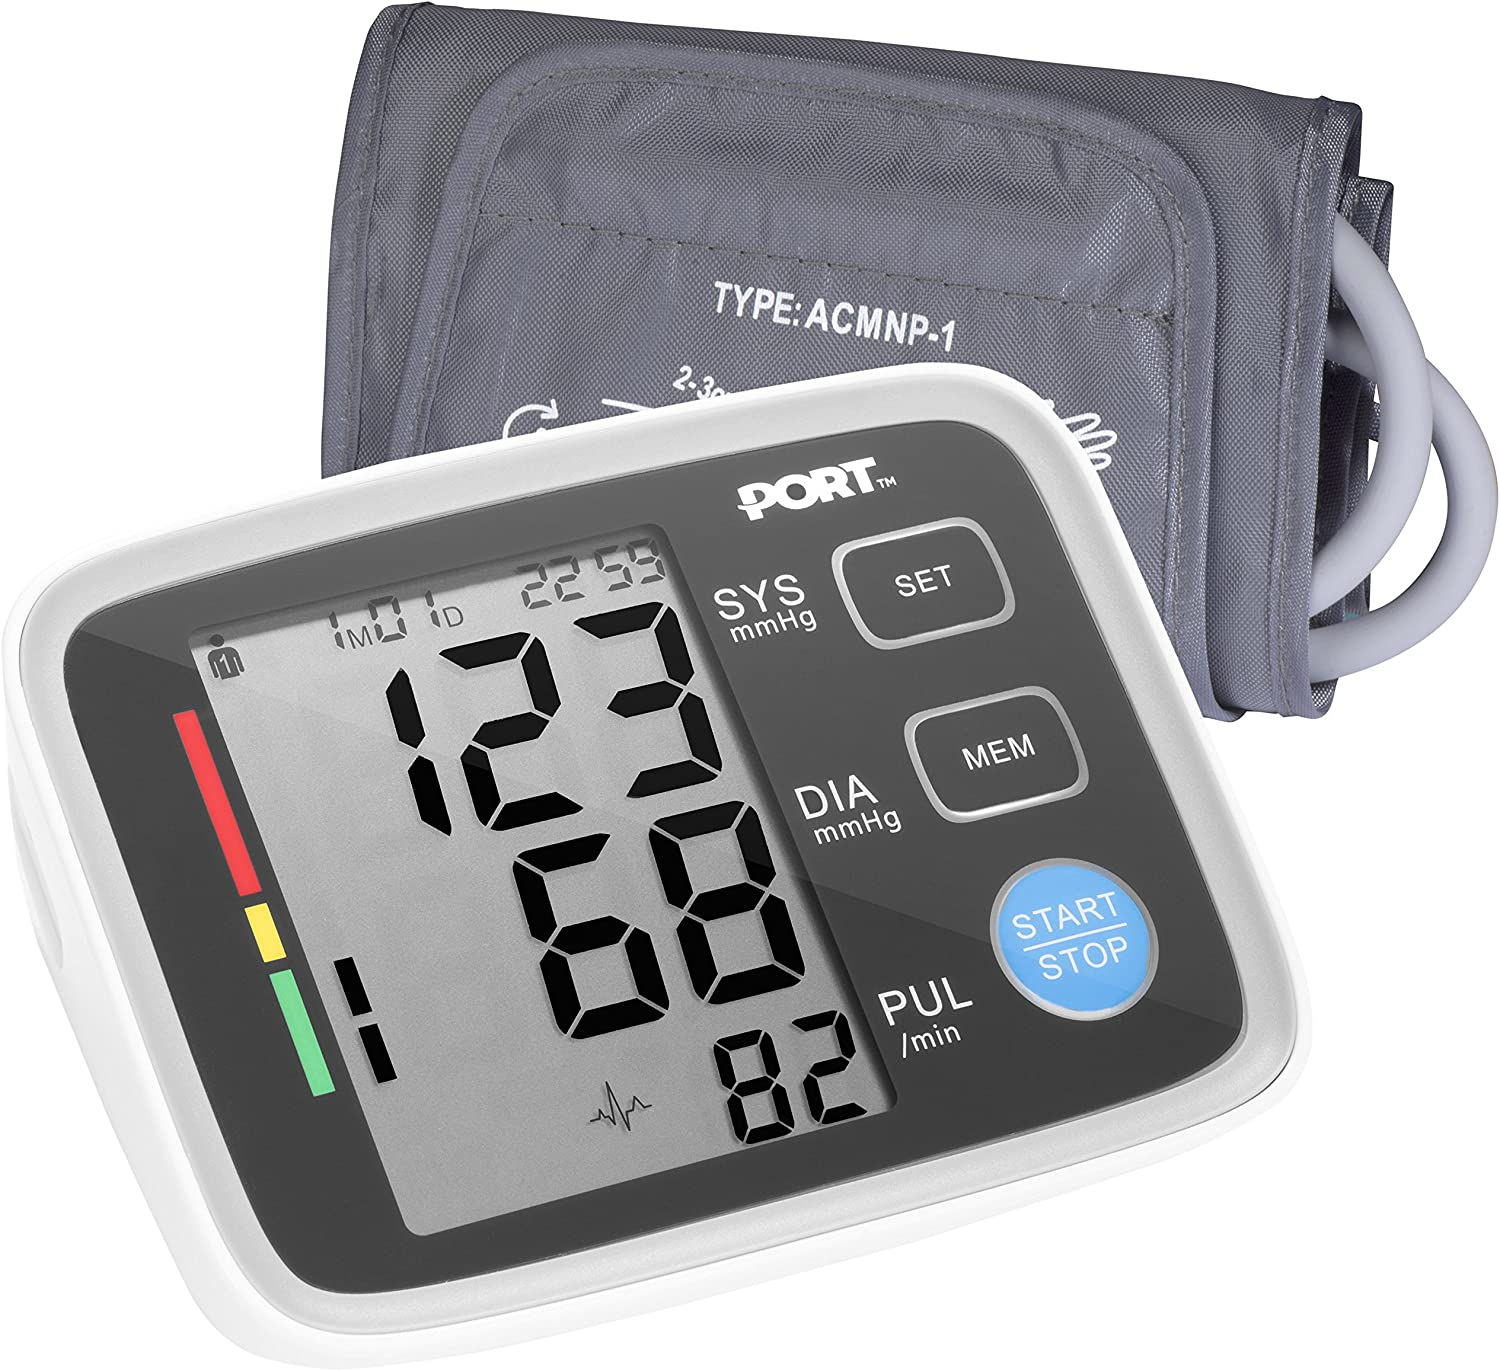 Digital Blood Pressure Monitor By PORT Systolic And Diastolic Blood Pressure Automatic Device, Accurate Readings, Easy To Understand, One Size Fits All Arm Sleeve, Memory Function For 2 Users